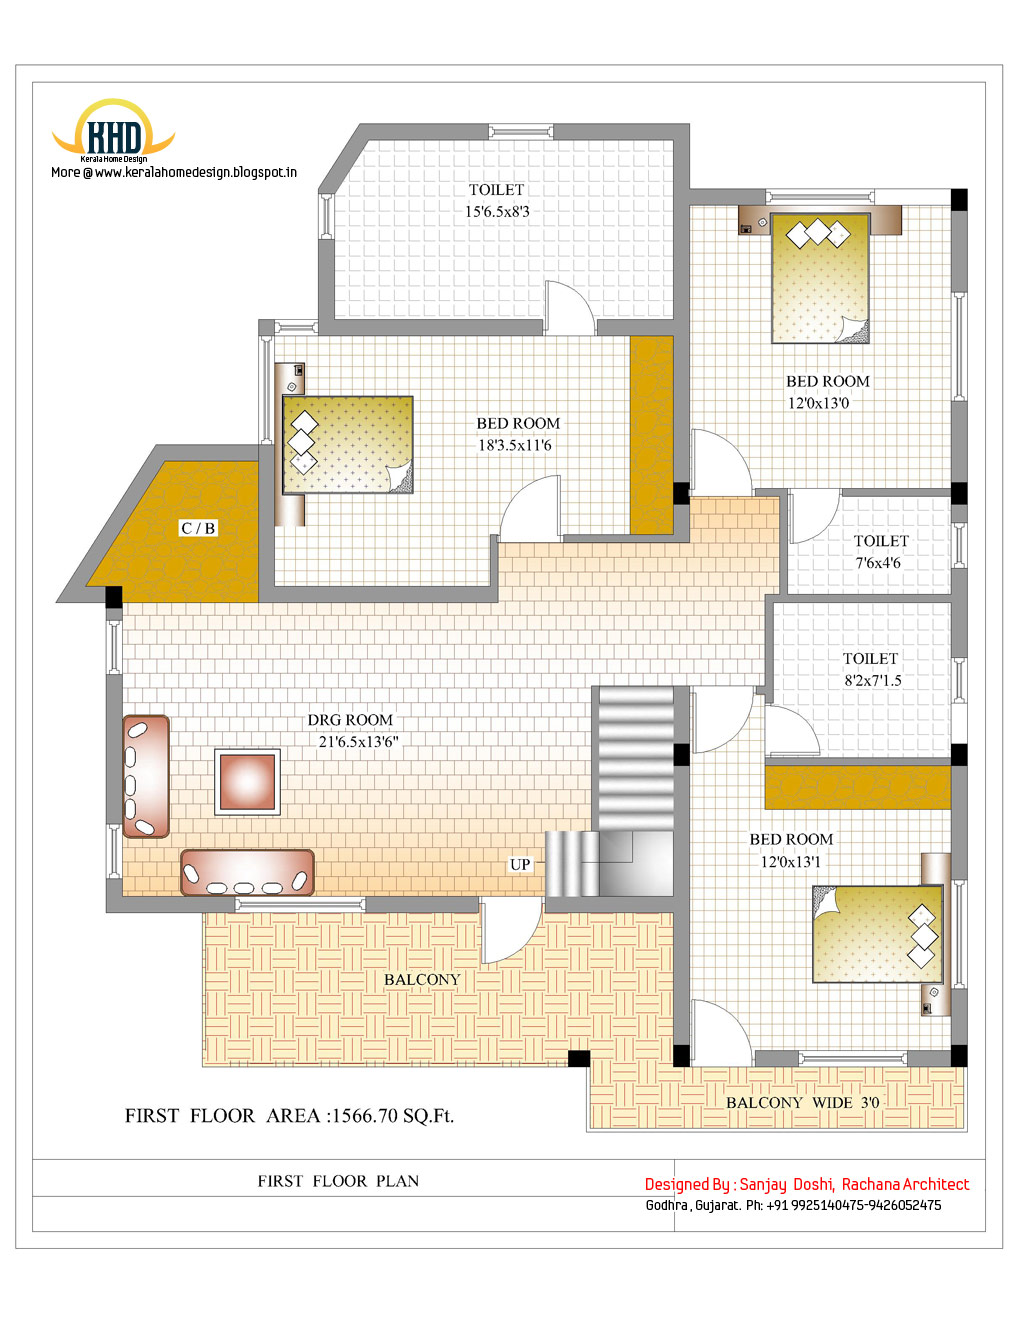 Tiny Home Designs: 3 Story House Plan And Elevation - 3521 Sq. Ft.